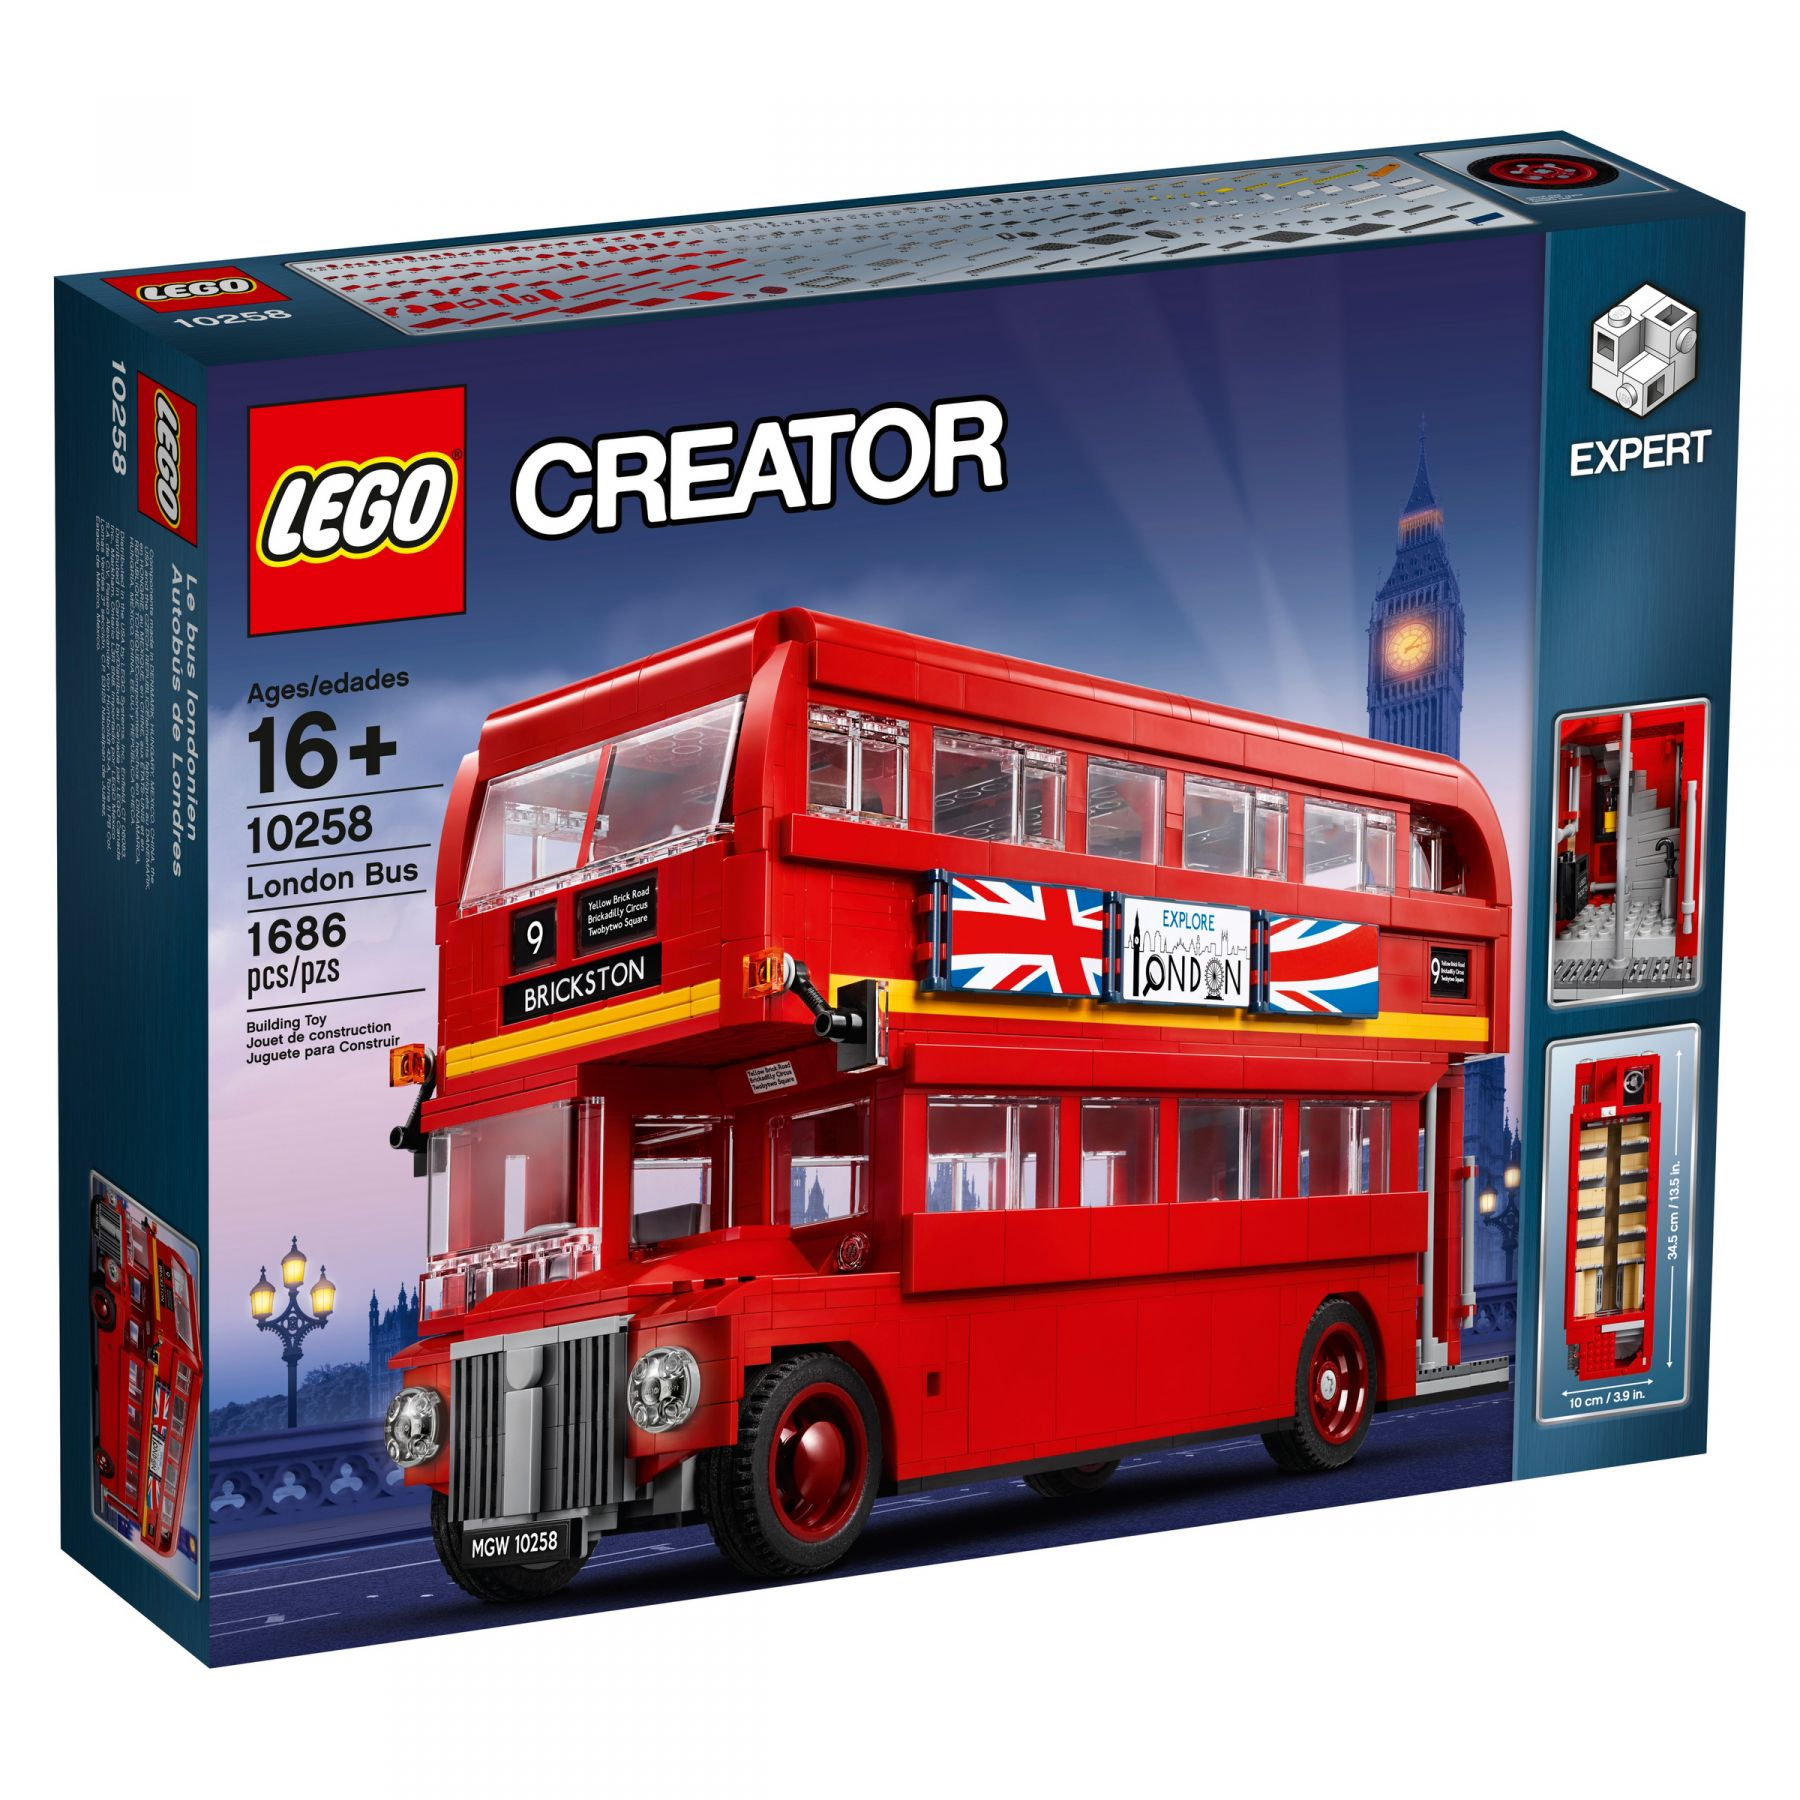 LEGO Advanced Models 10258 Doppeldecker Bus LEGO_10258_alt1.jpg